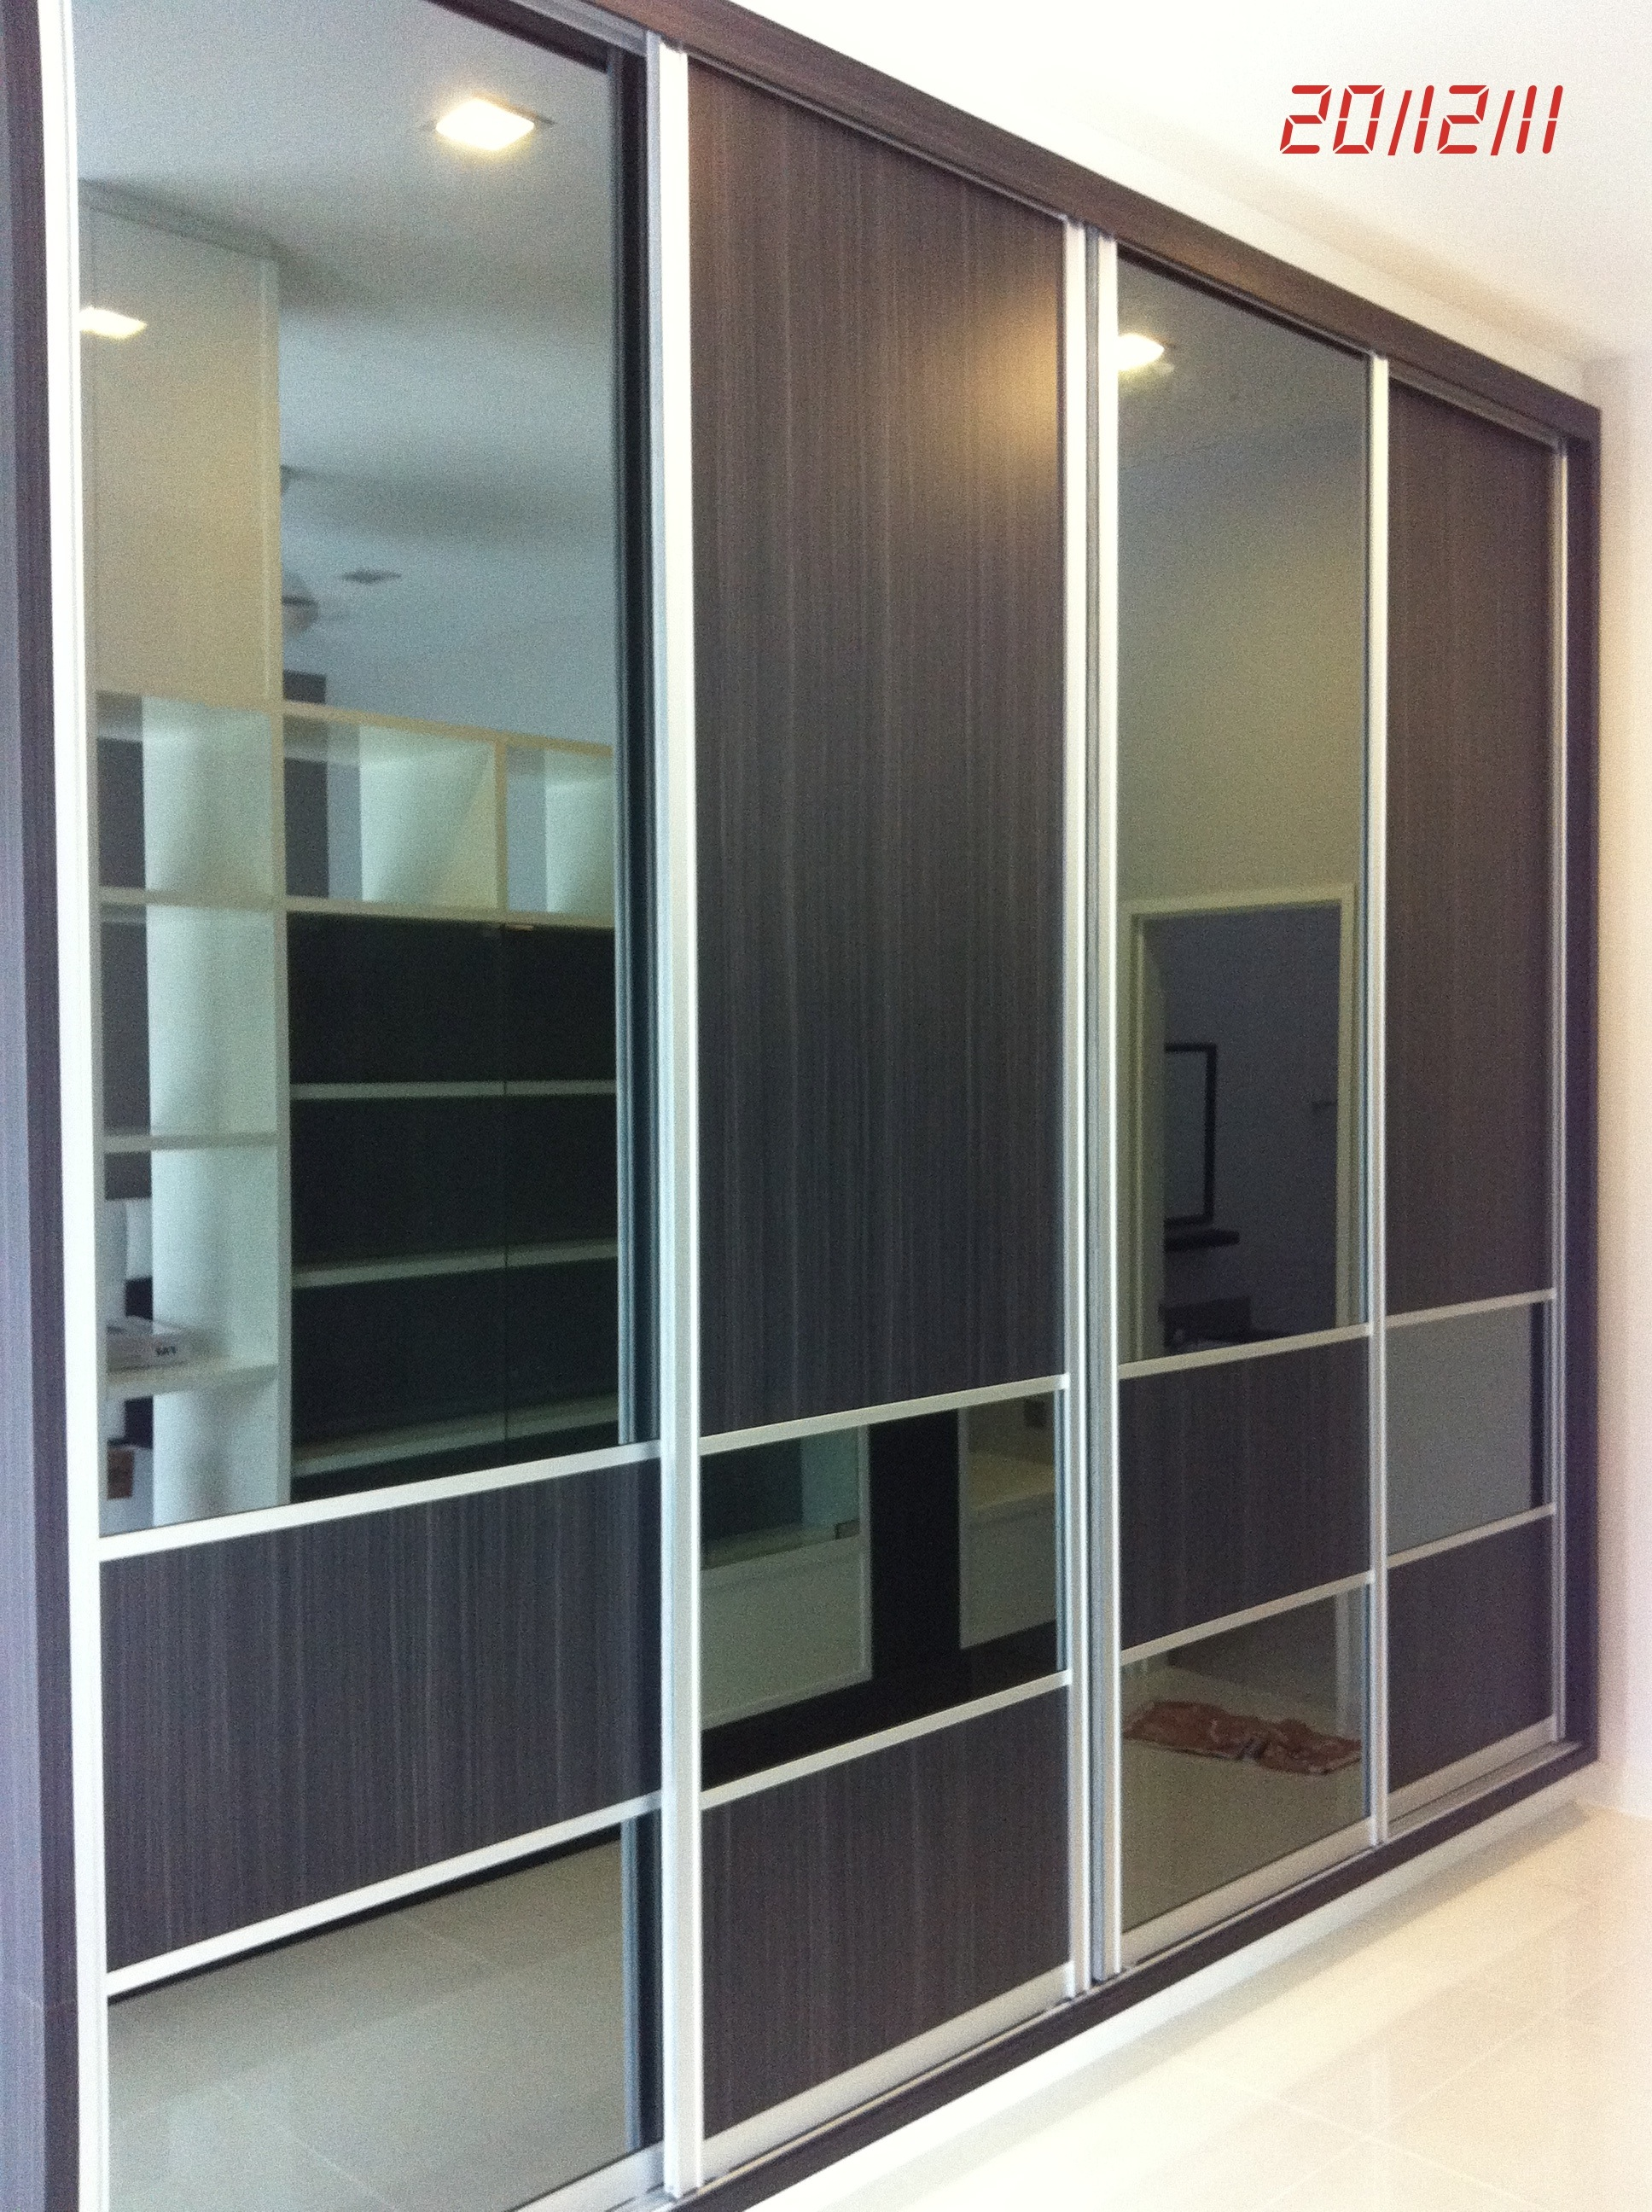 Built in wardrobe malaysia walk in closet malaysia full length built in wardrobe with mirrors amipublicfo Image collections